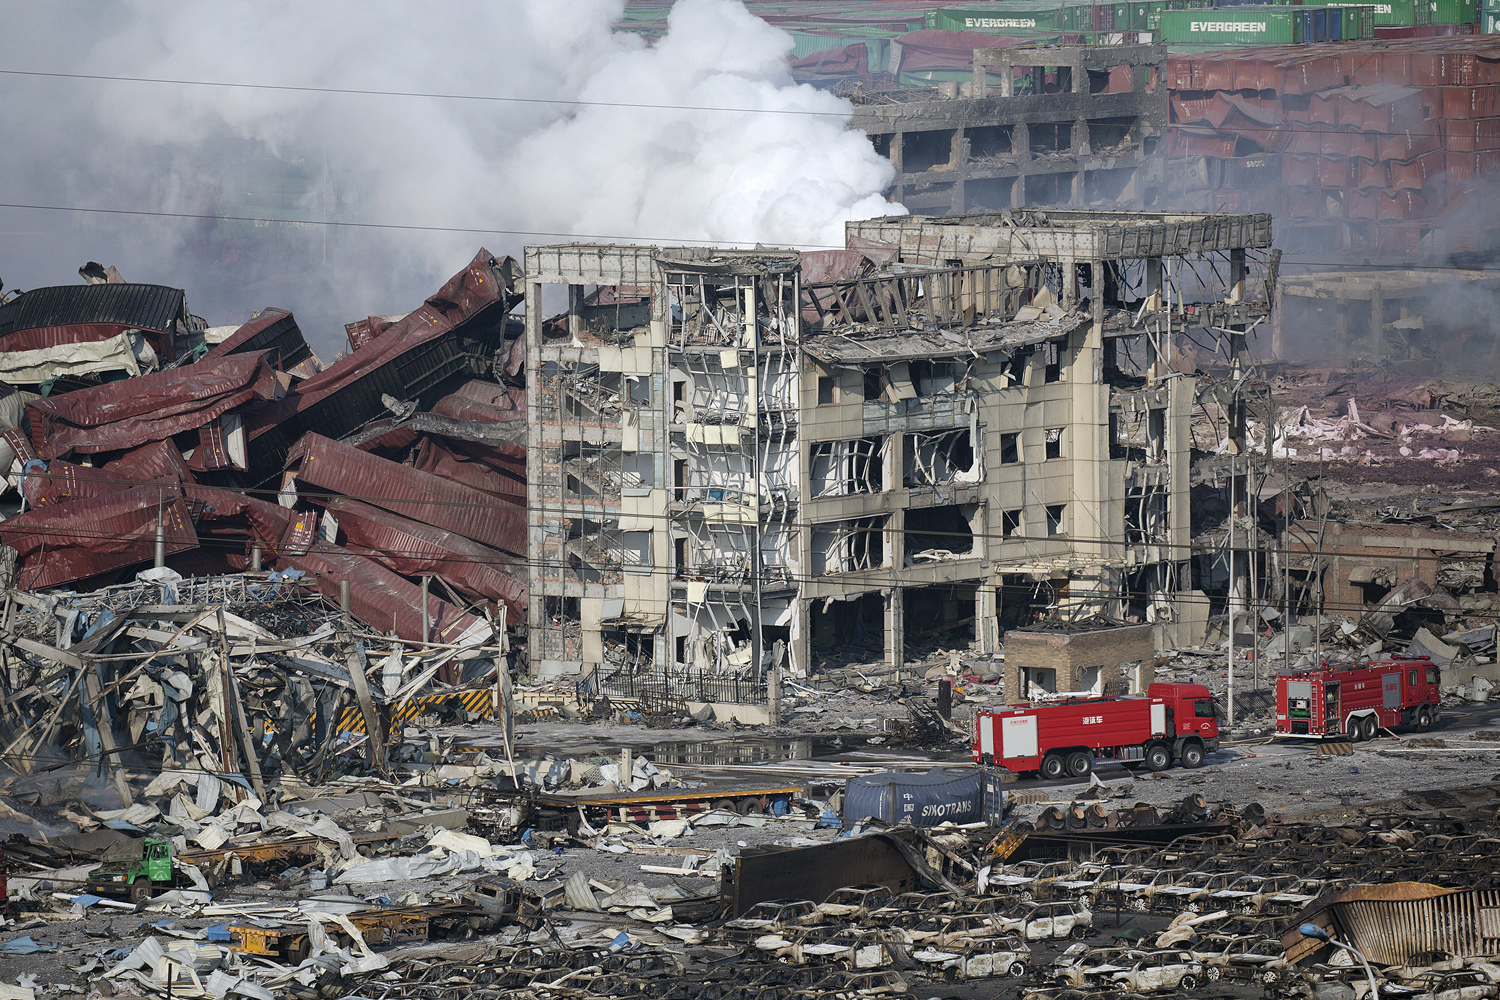 Massive Explosions in Tianjin, China_19